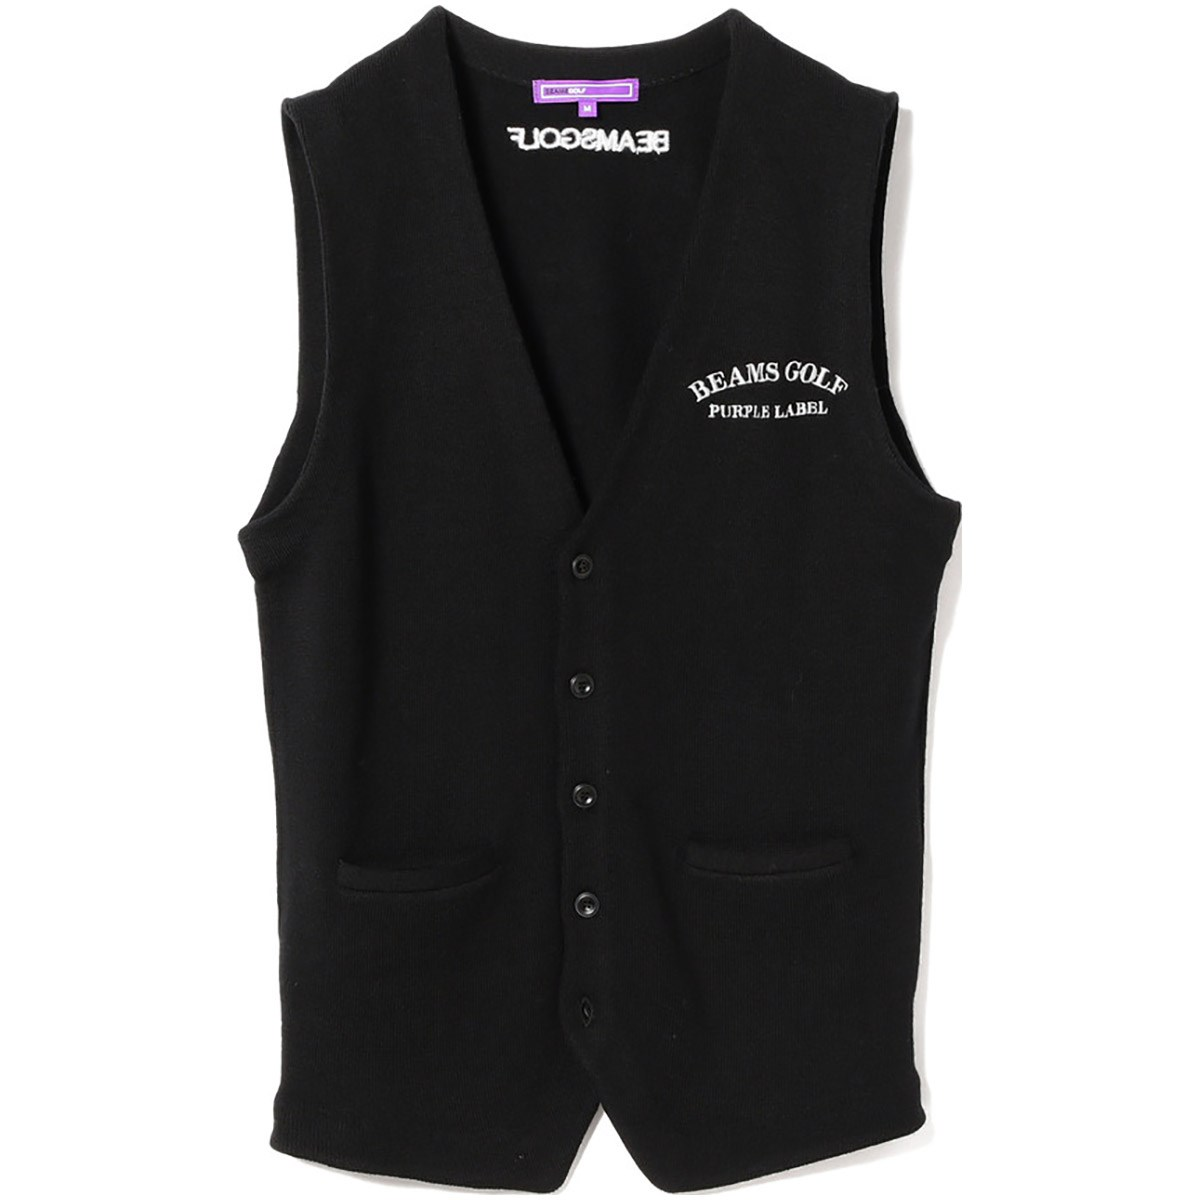 ビームスゴルフ BEAMS GOLF PURPLELABEL CASHFEEL ベスト